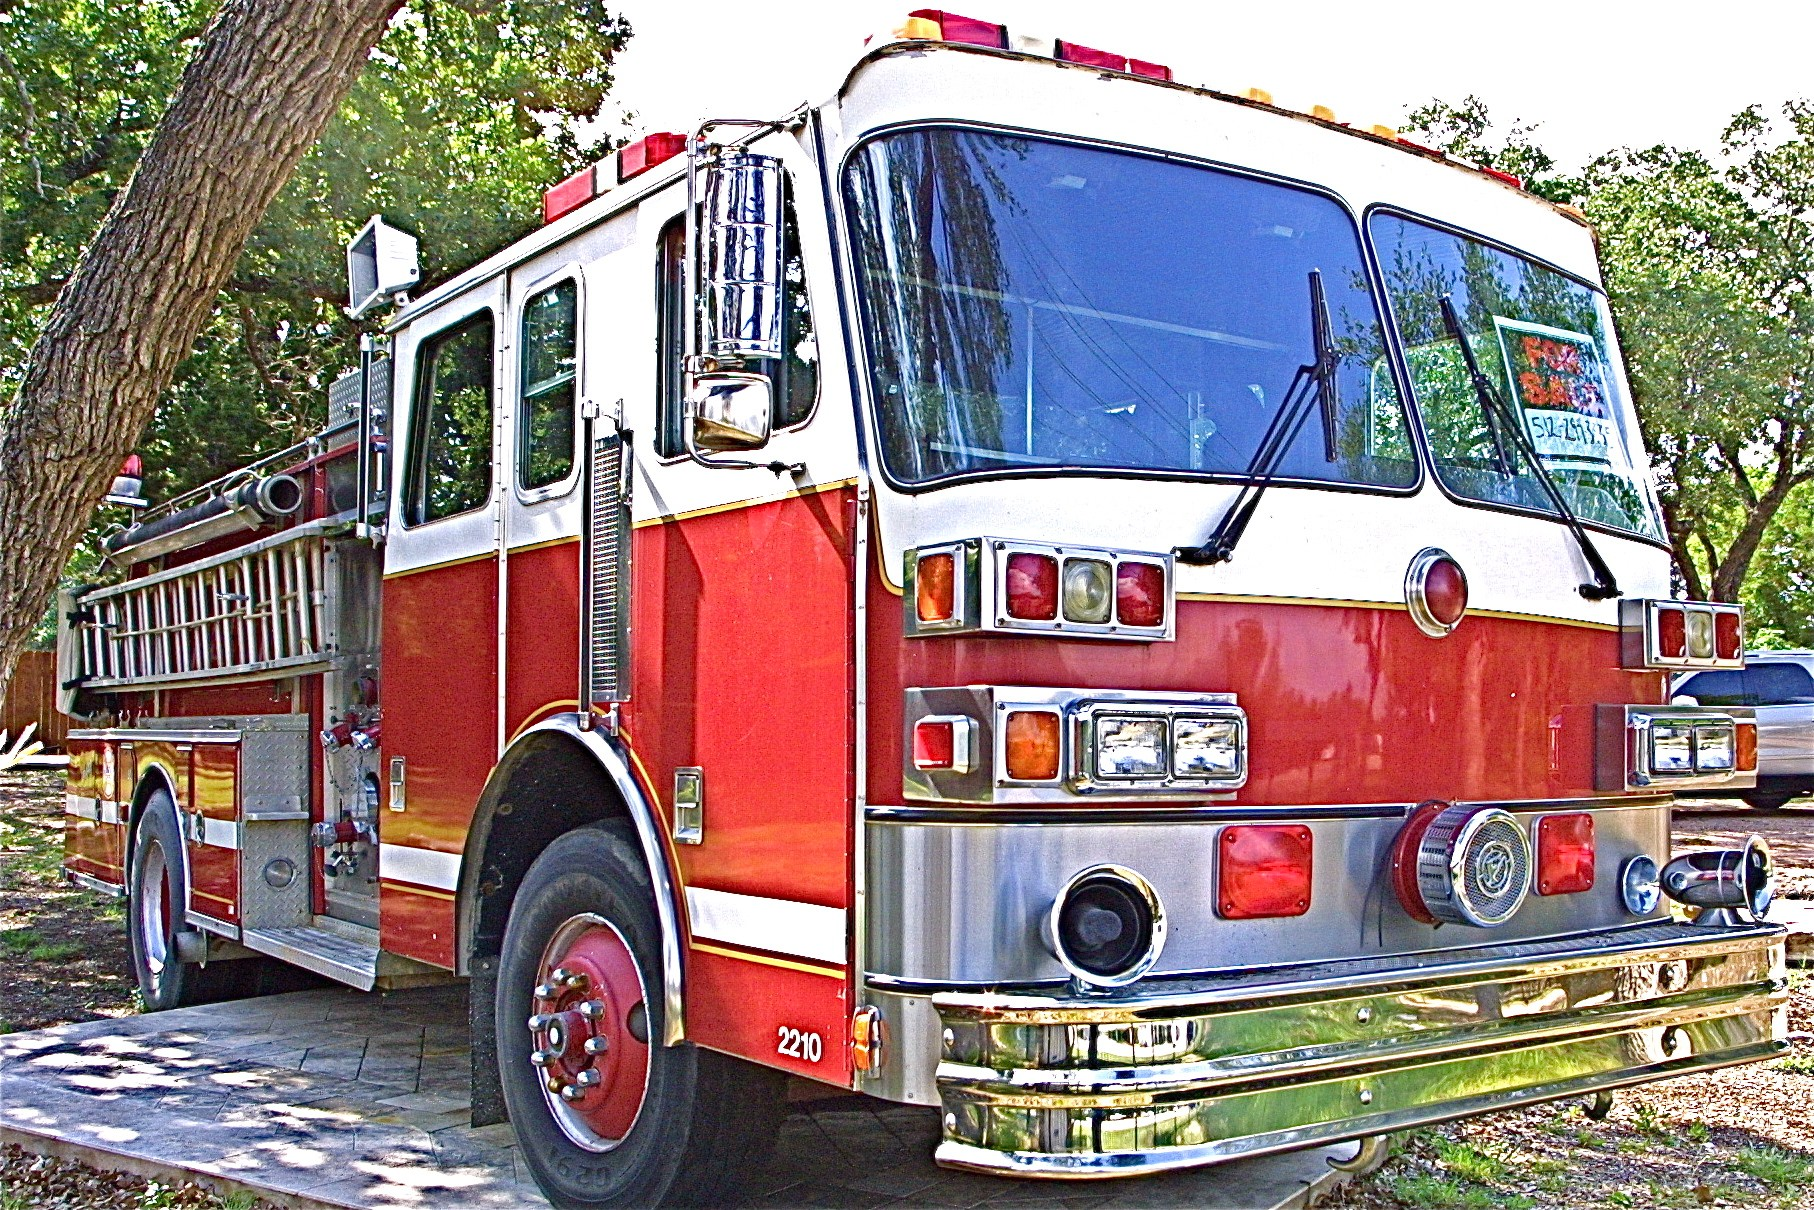 buy this large red lightly used fire truck in nw austin atx car pictures real pics from. Black Bedroom Furniture Sets. Home Design Ideas